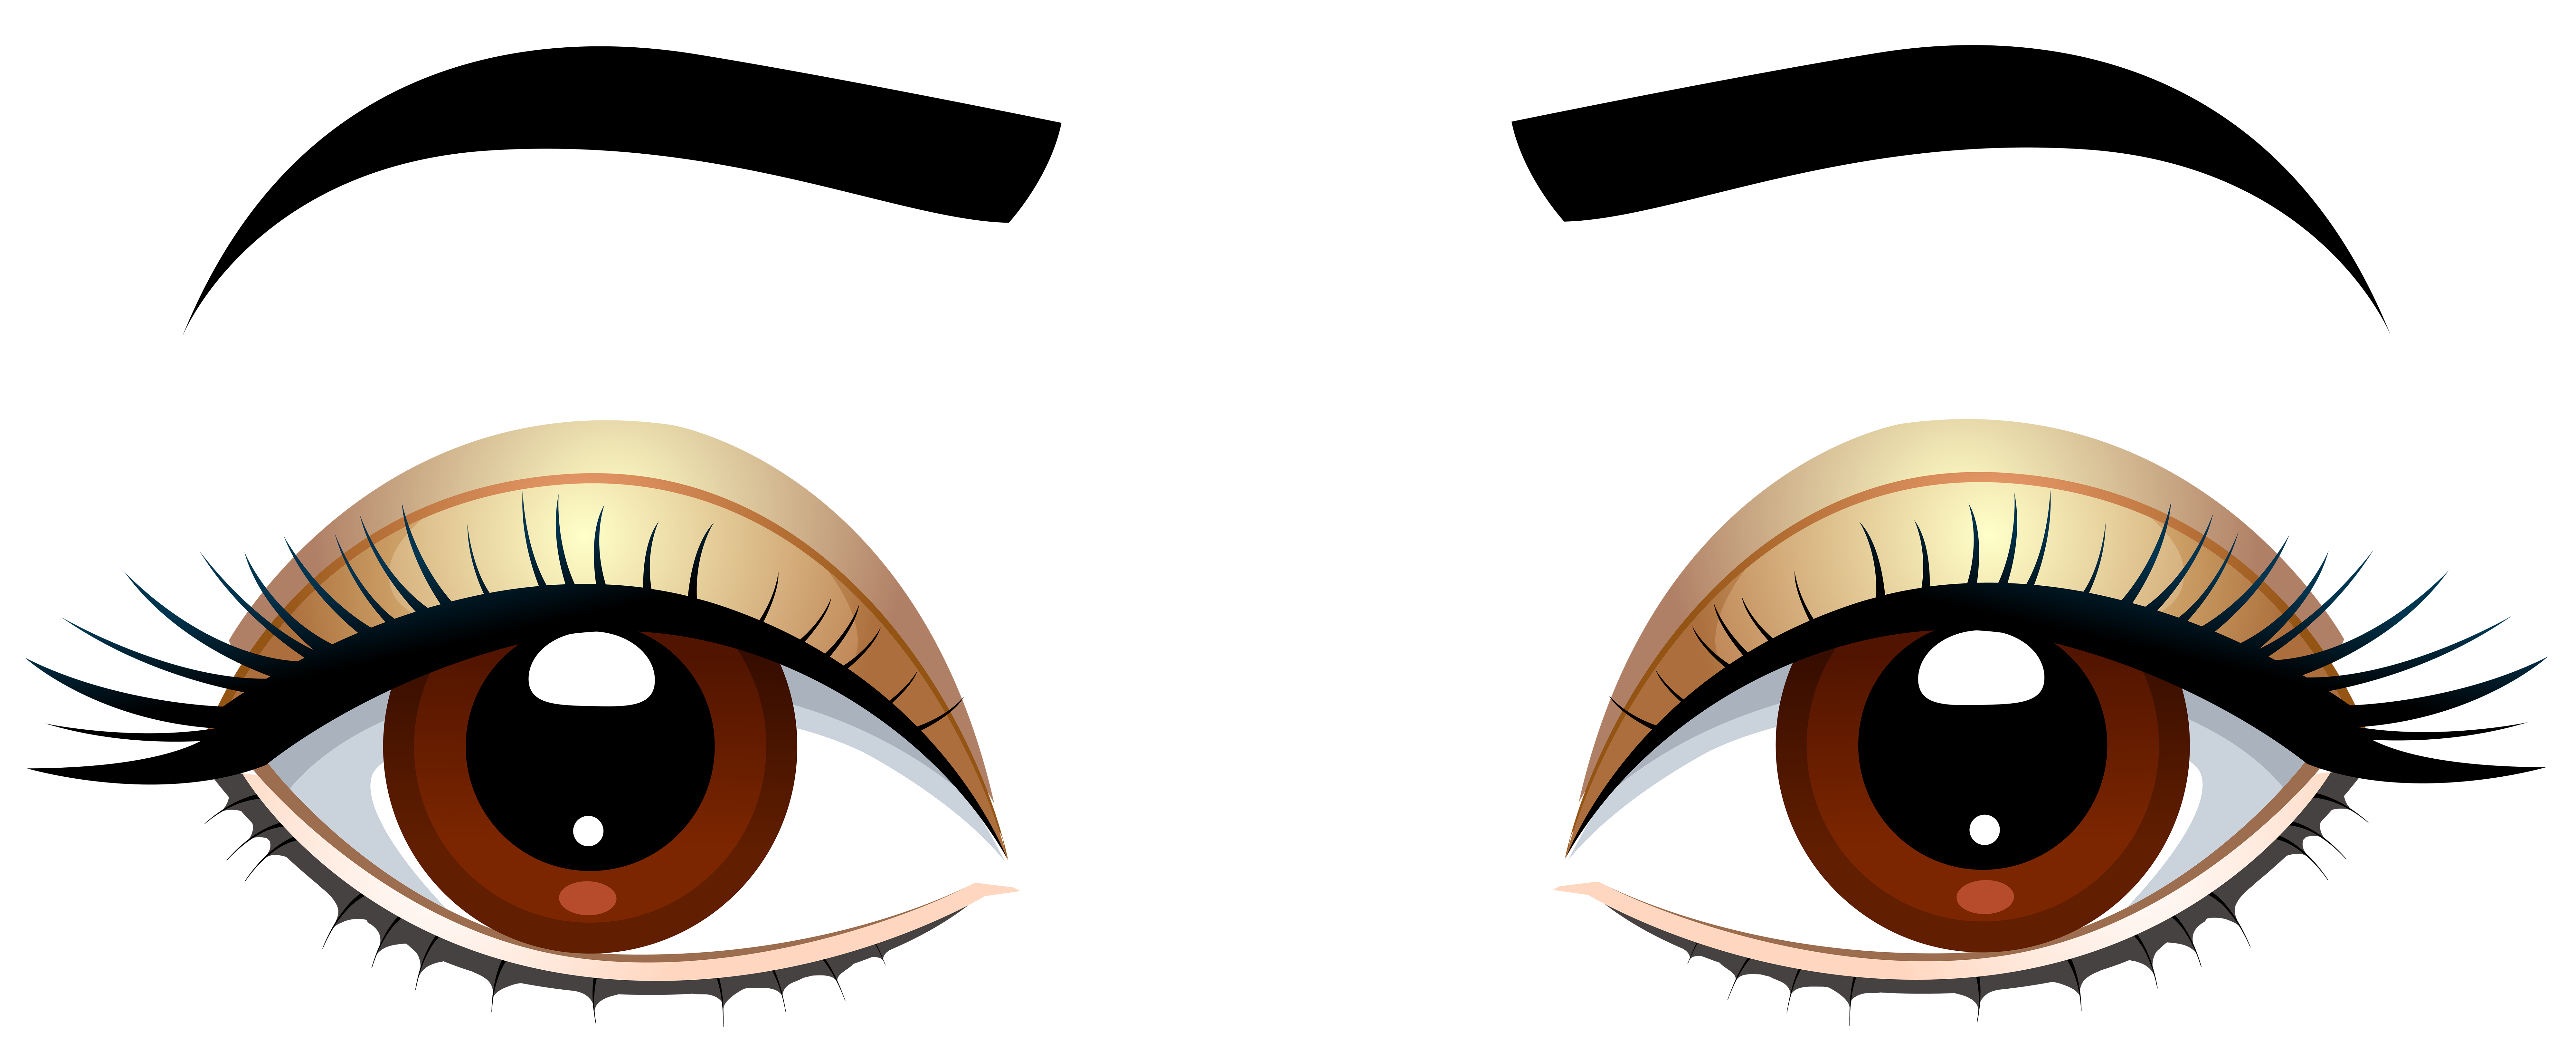 8000x3219 Collection Of Free Eye Drawing Cute Download On Ui Ex